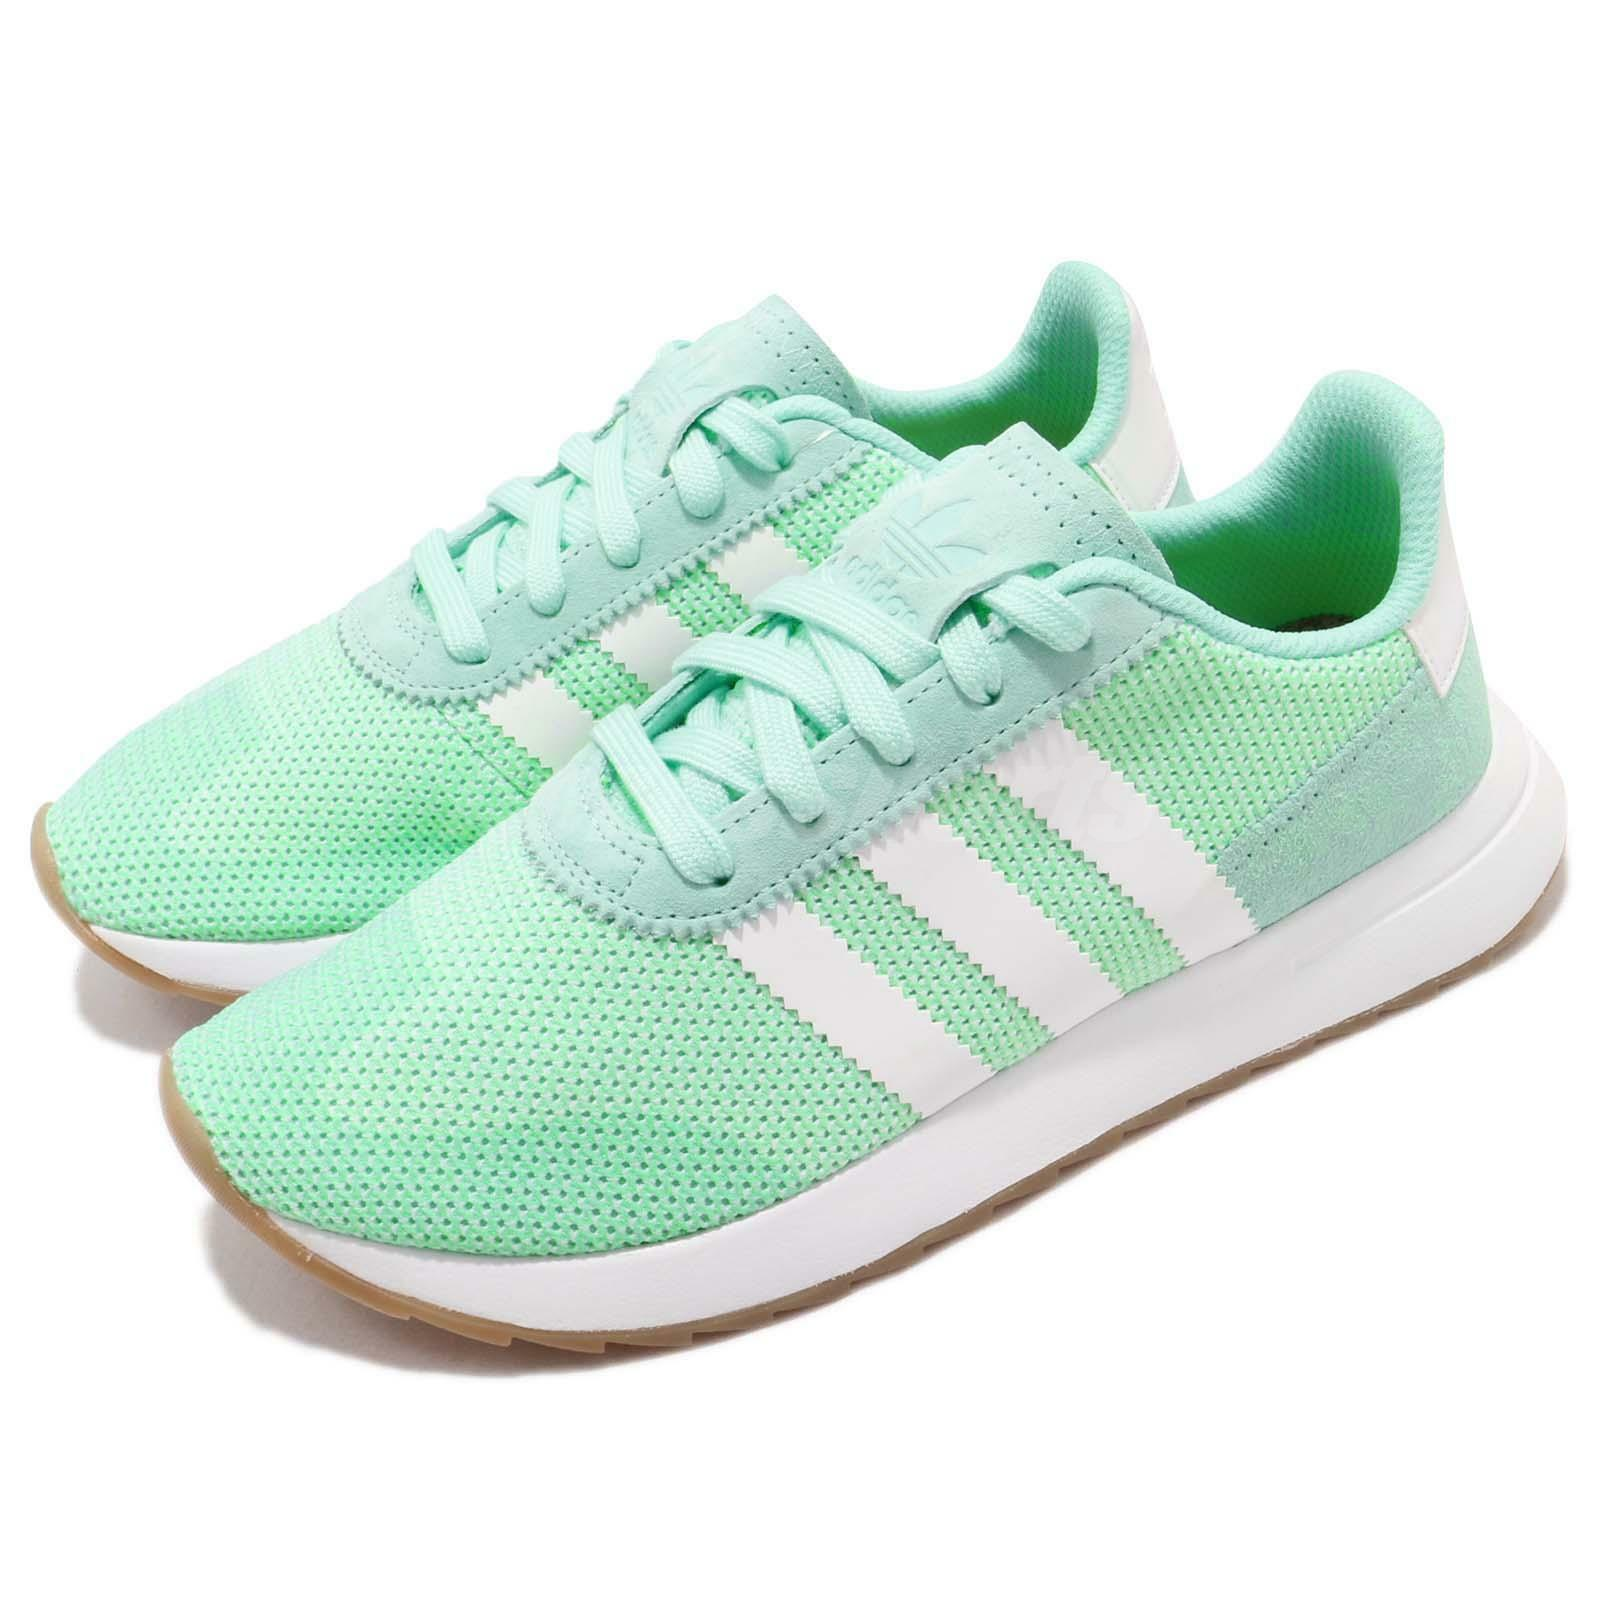 Adidas Originals FLB_Runner W Flashback Green White Women Running shoes DB2122